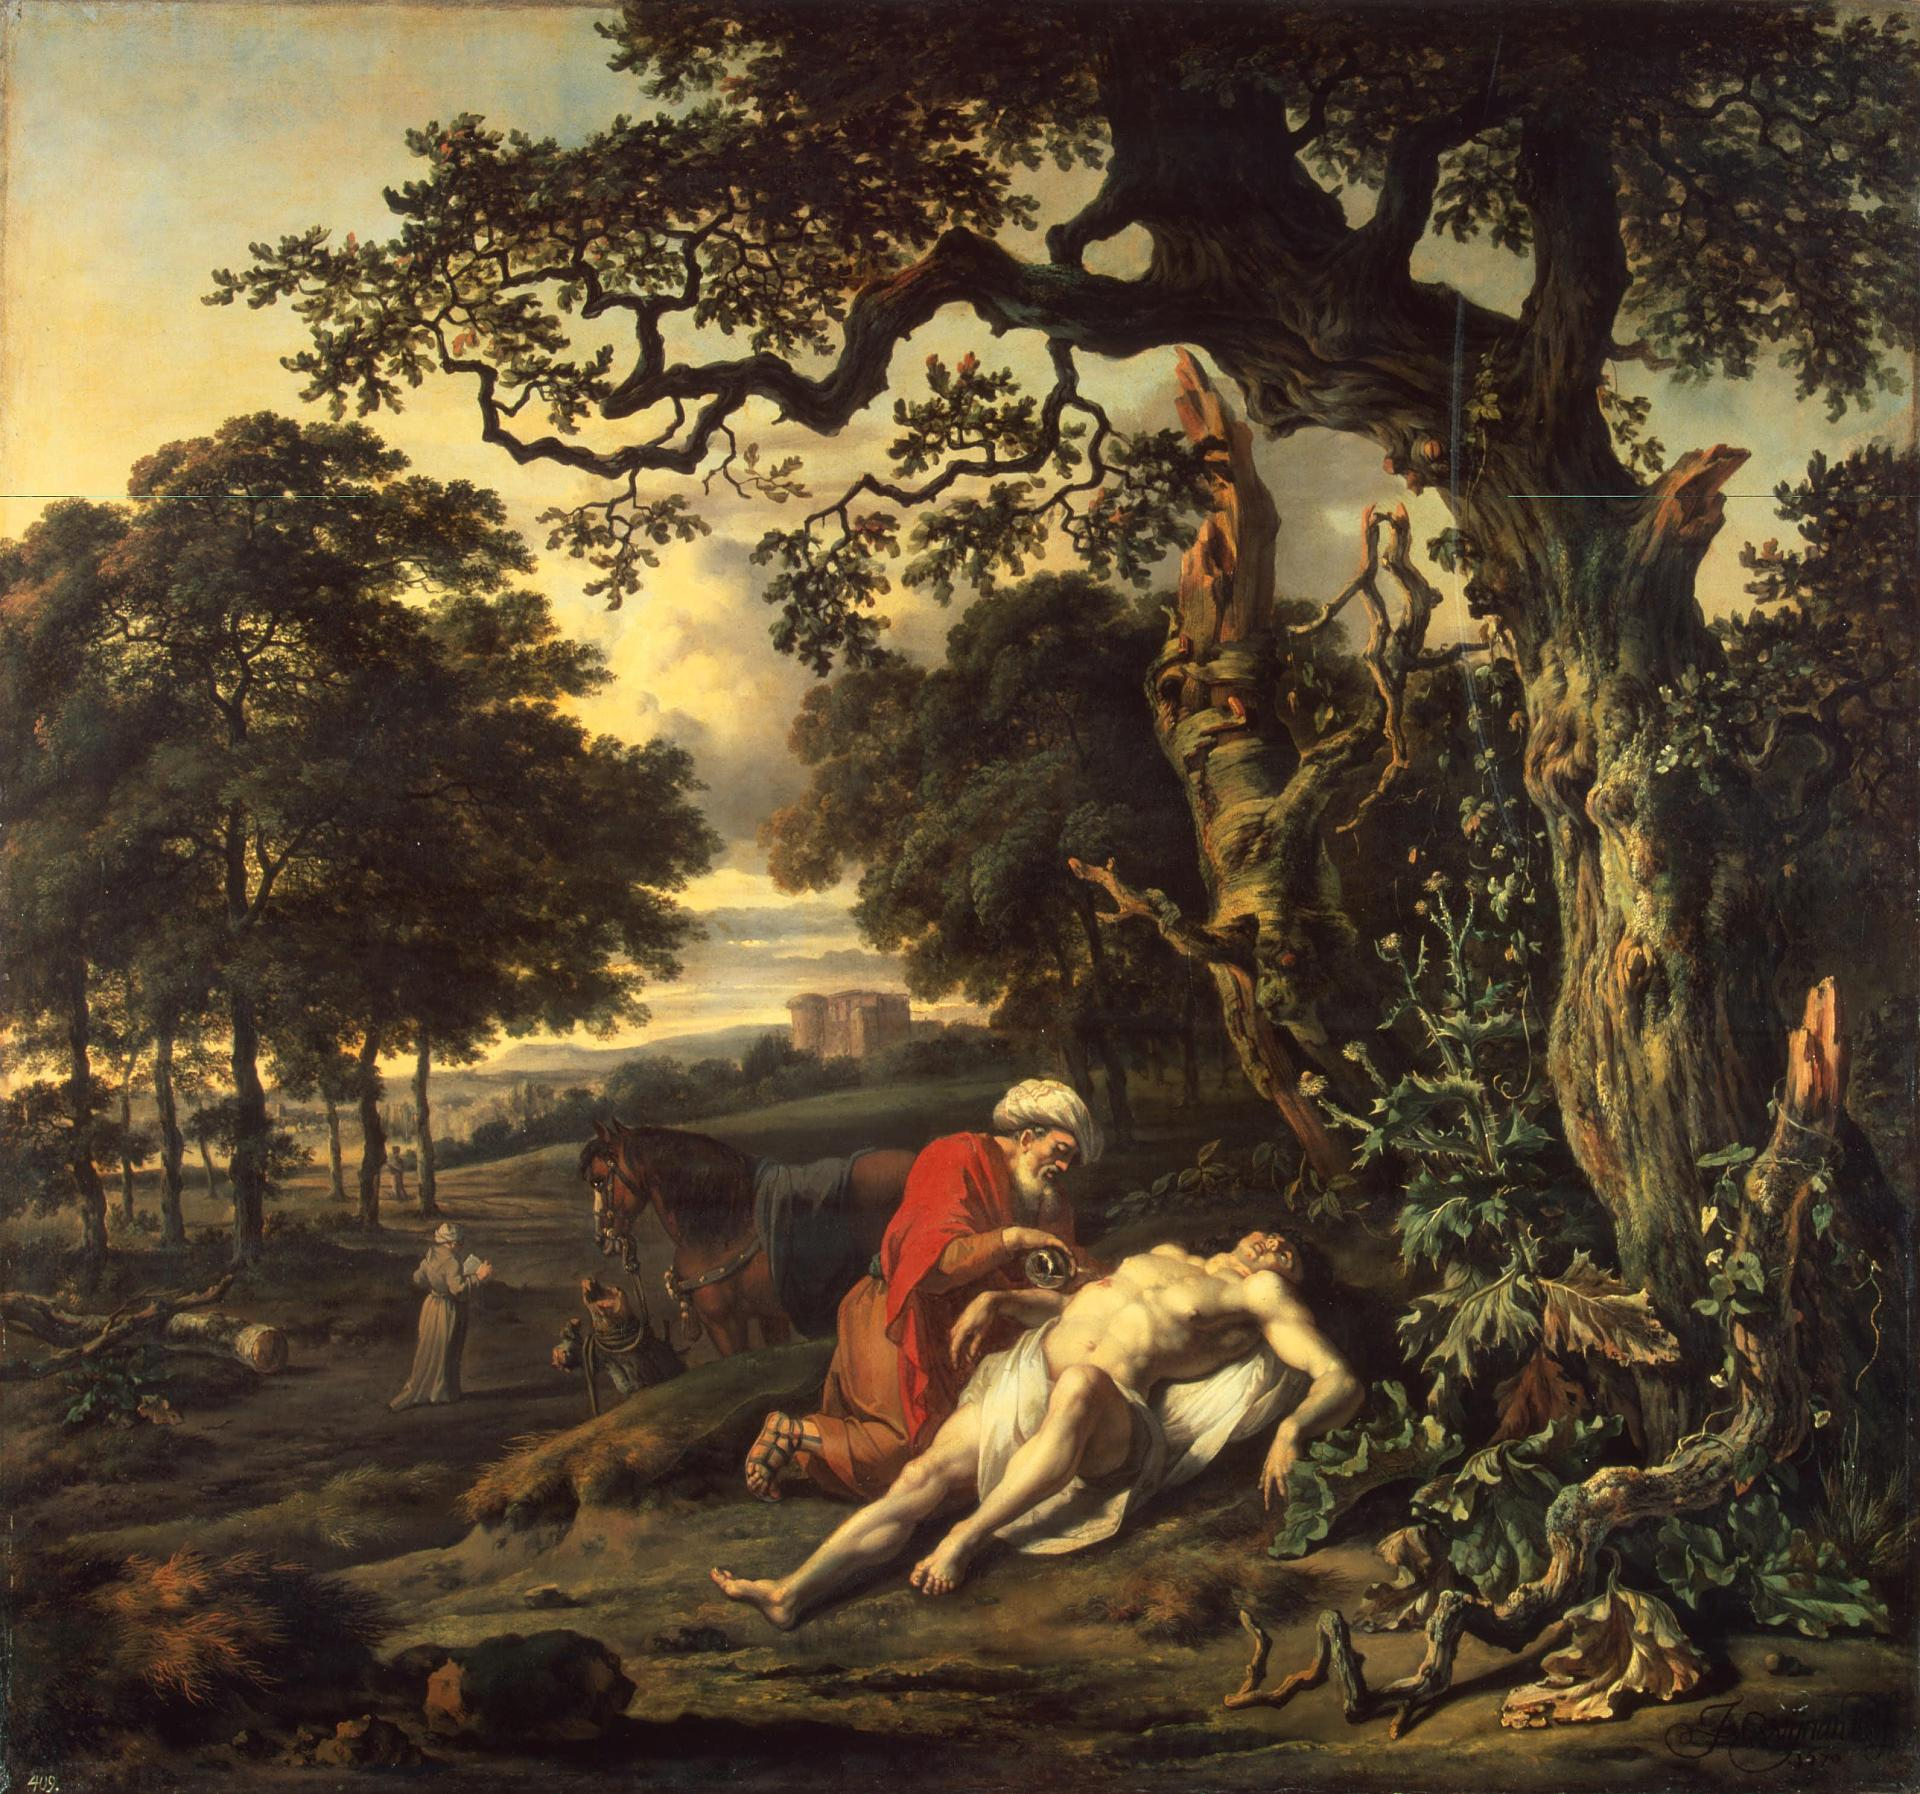 https://i0.wp.com/upload.wikimedia.org/wikipedia/commons/f/f2/Jan_Wijnants_-_Parable_of_the_Good_Samaritan.jpg